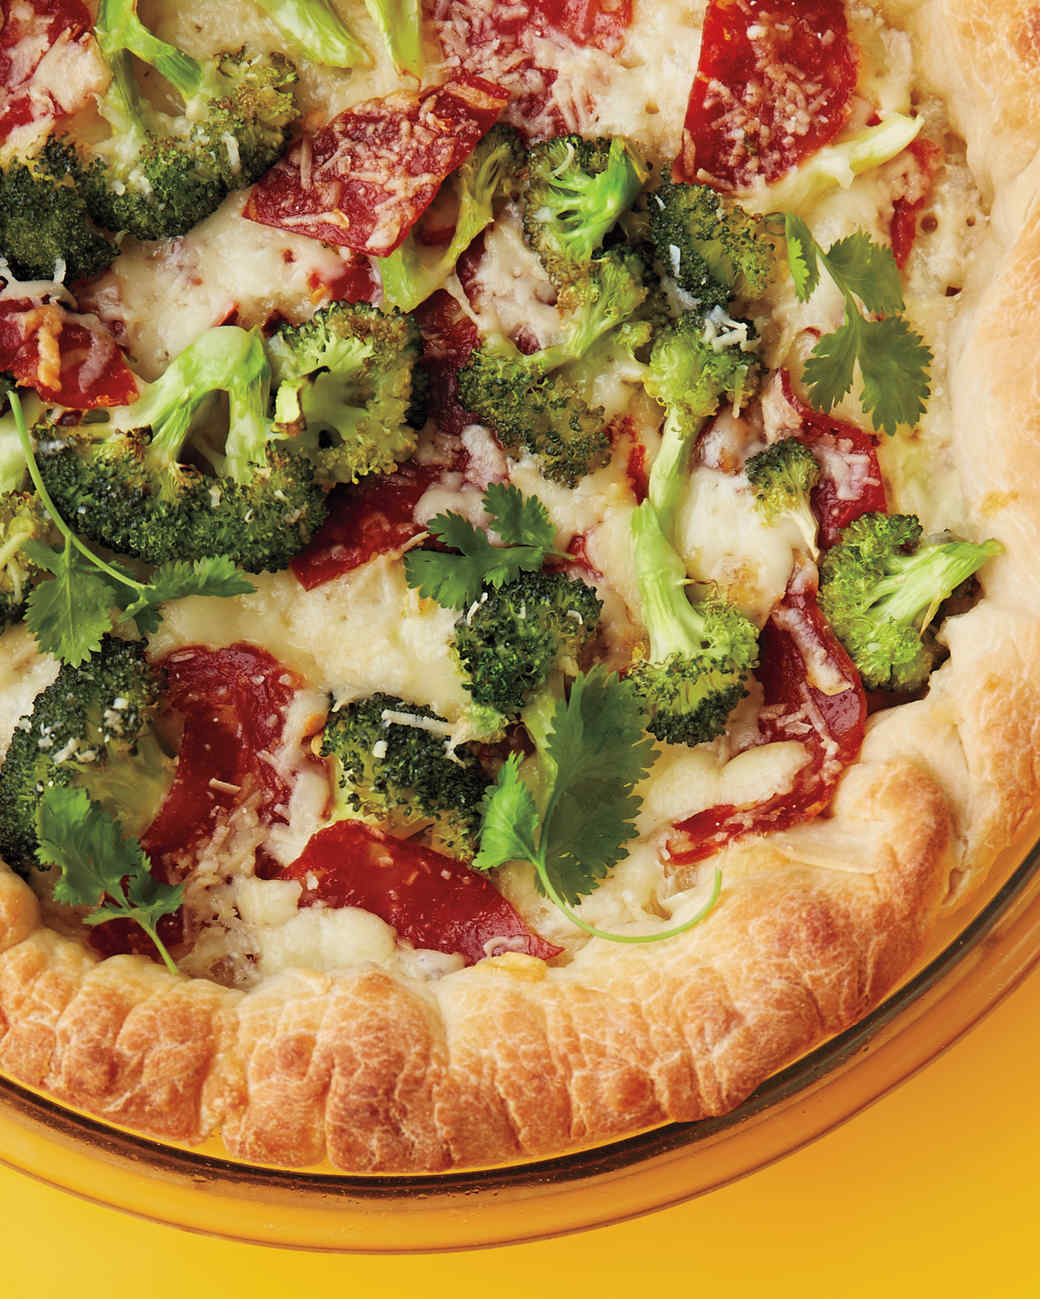 broccoli-spinach-pizza-014-med109951.jpg